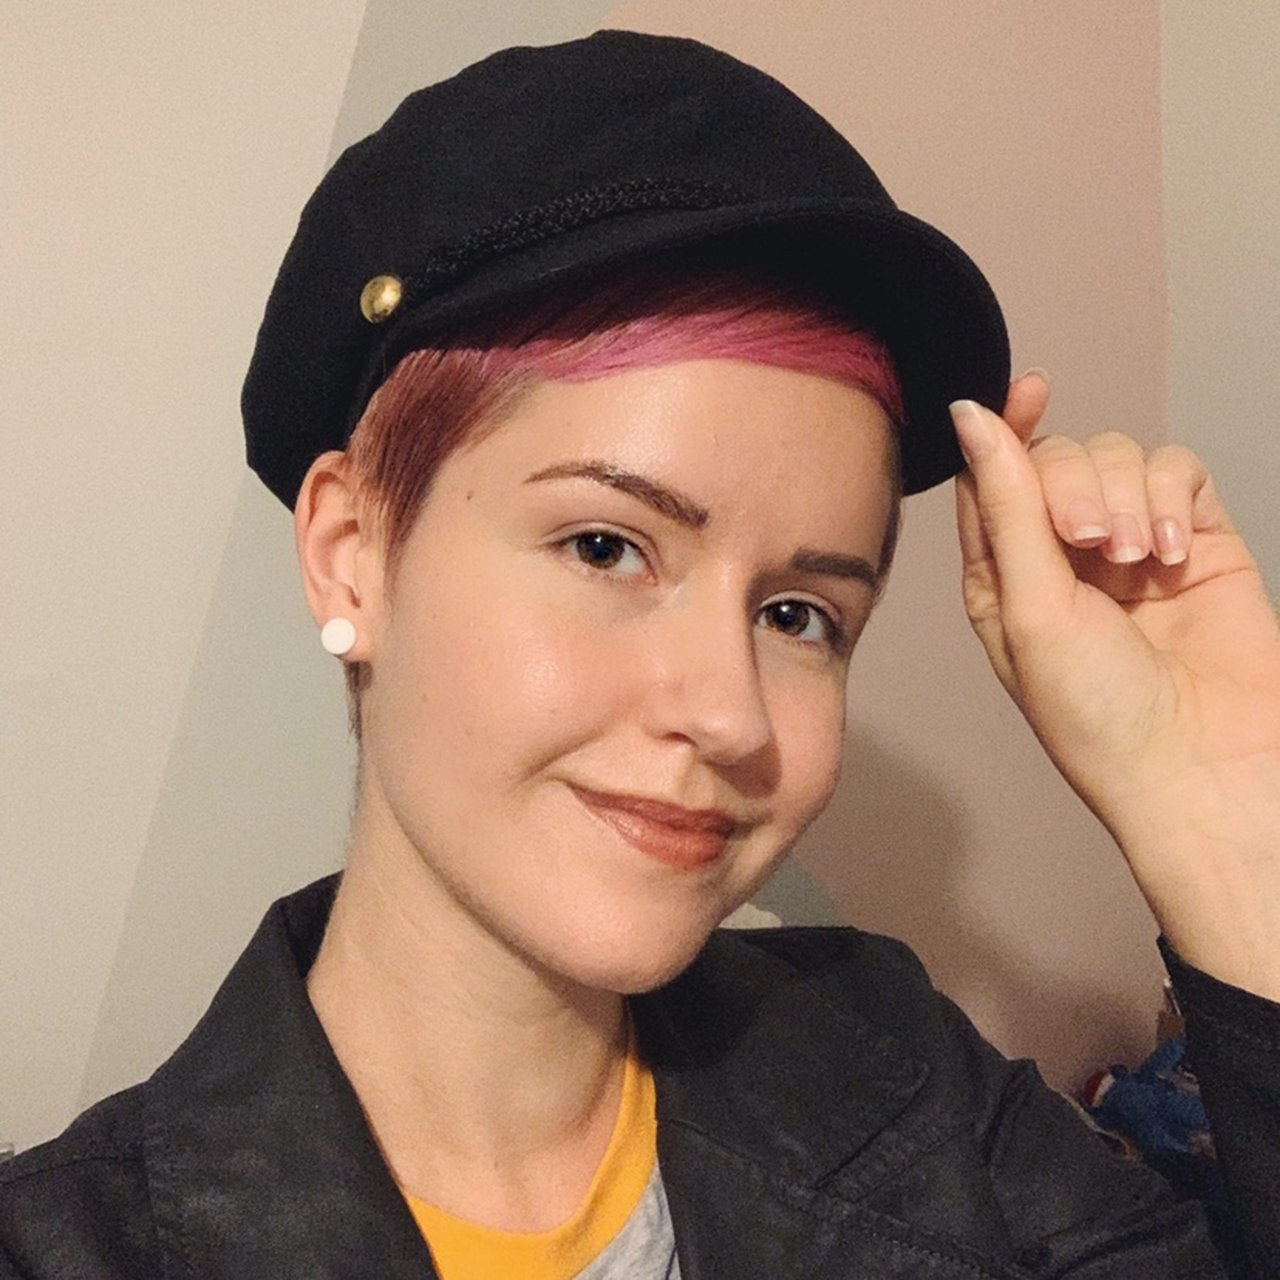 Adorable baker boy hat I bought from Target ✨ I love the I - Depop 327d1b33728